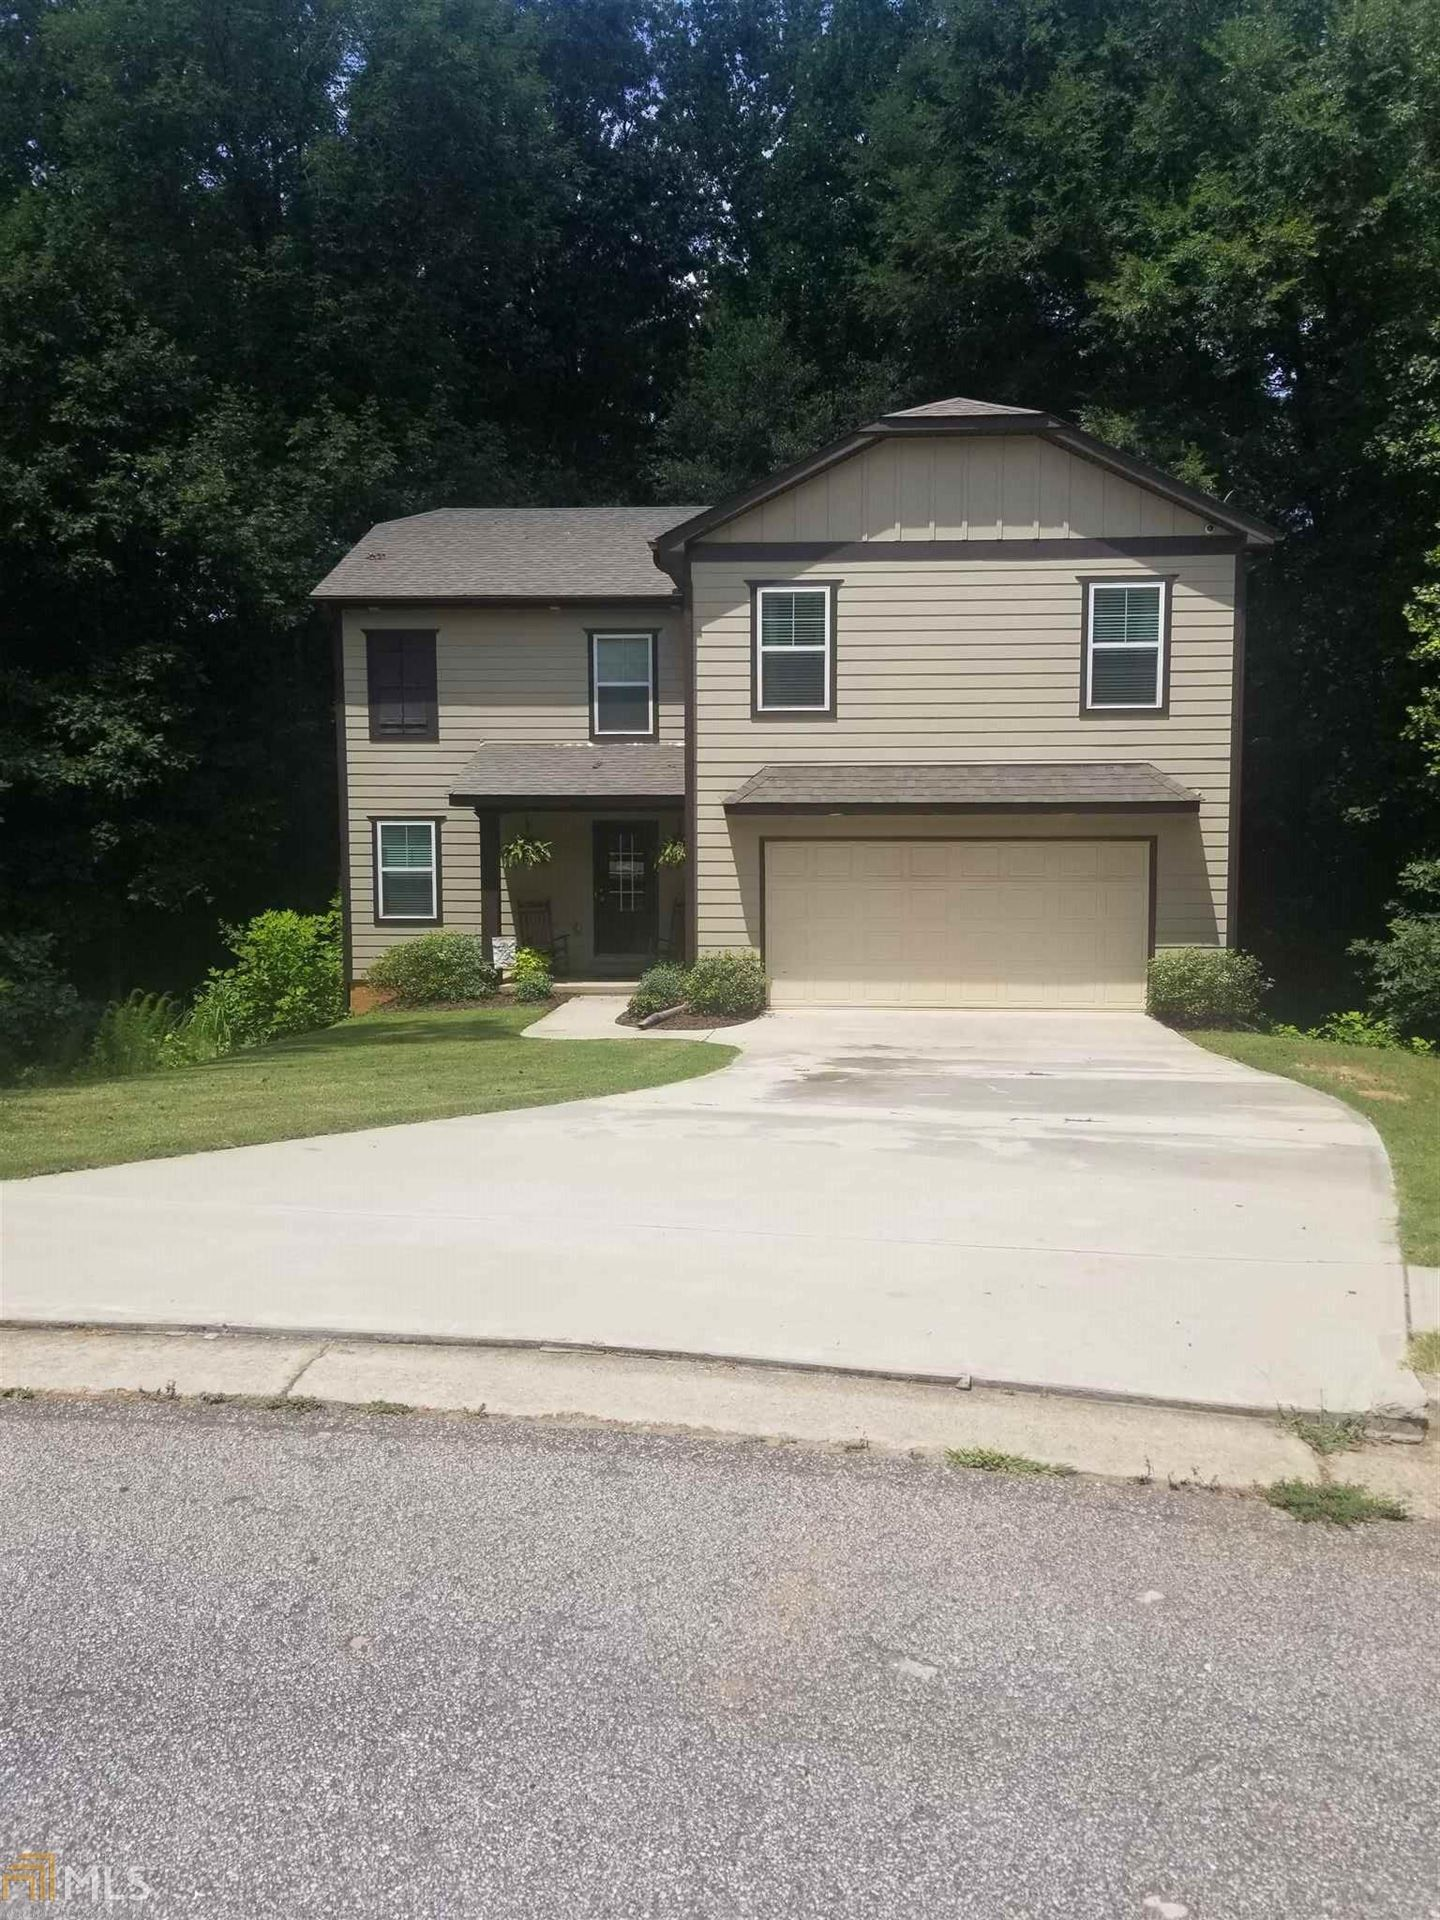 582 Lindsey Way, Social Circle, GA 30025 - #: 8826277